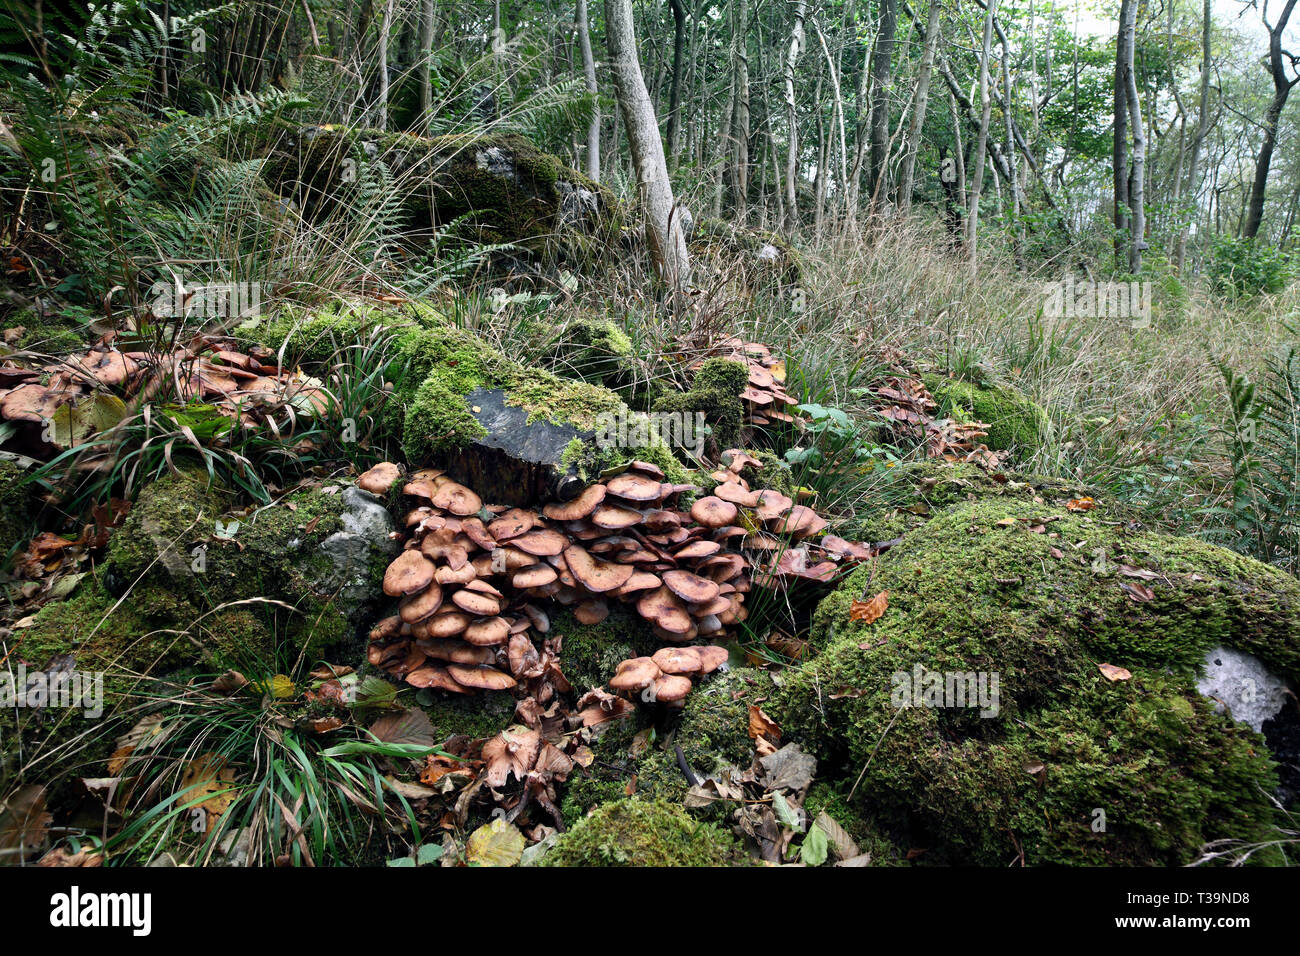 Clusters of Honey Fungus (Armillaria mellea) growing around dead tree trunks in Grass Wood in Wharfdale, North Yorkshire. - Stock Image